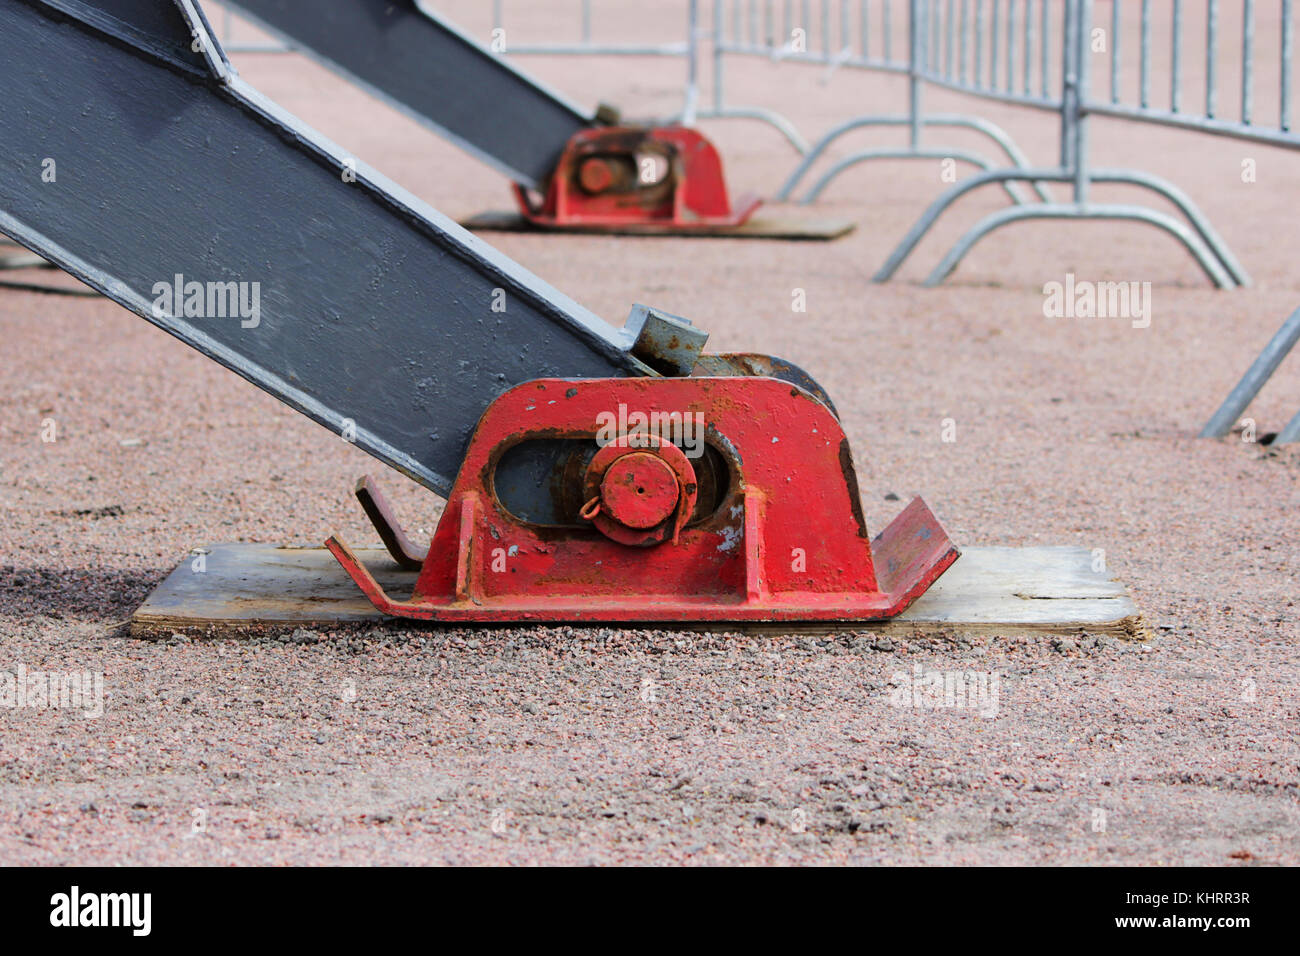 Truck strong outrigger stabilizing legs extended. - Stock Image